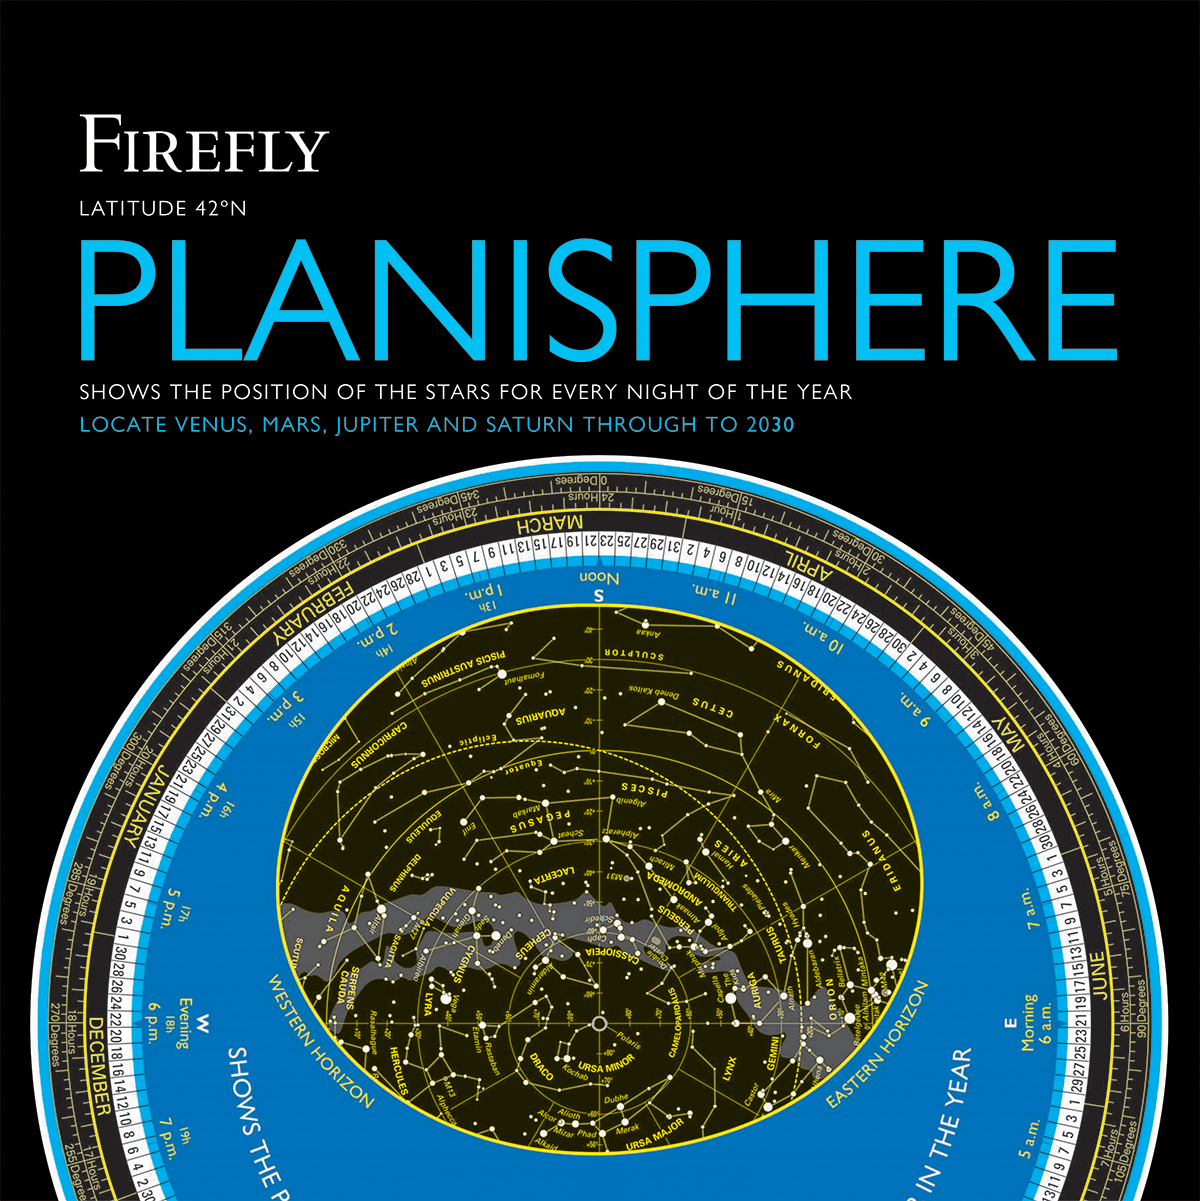 Firefly Planisphere : Latitude 42 Degrees North | Science